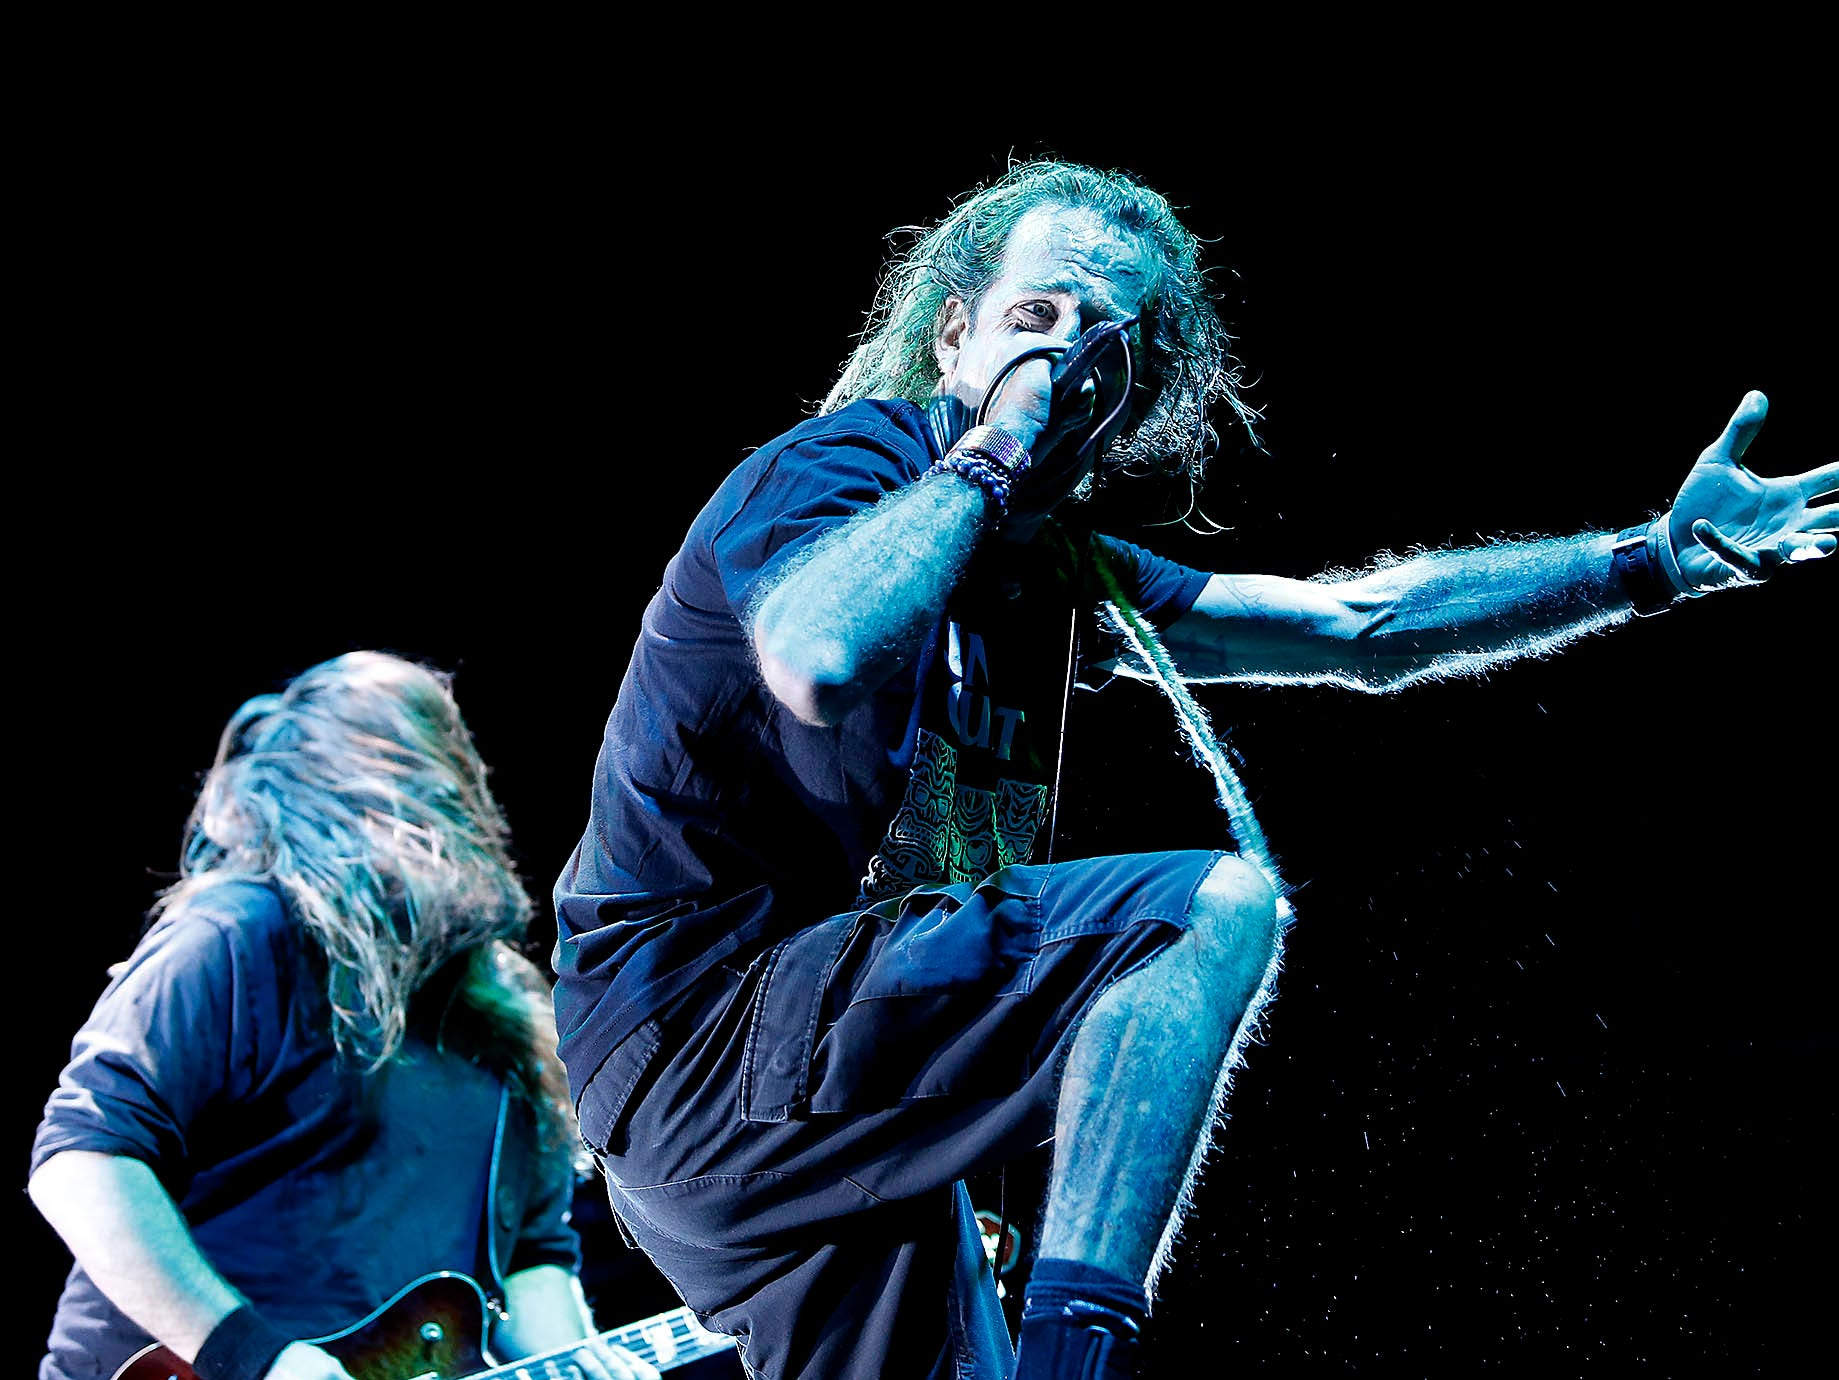 Lamb of God opens for Slayer during their performance at Ak-Chin Pavilion in Phoenix on May 2, 2019.